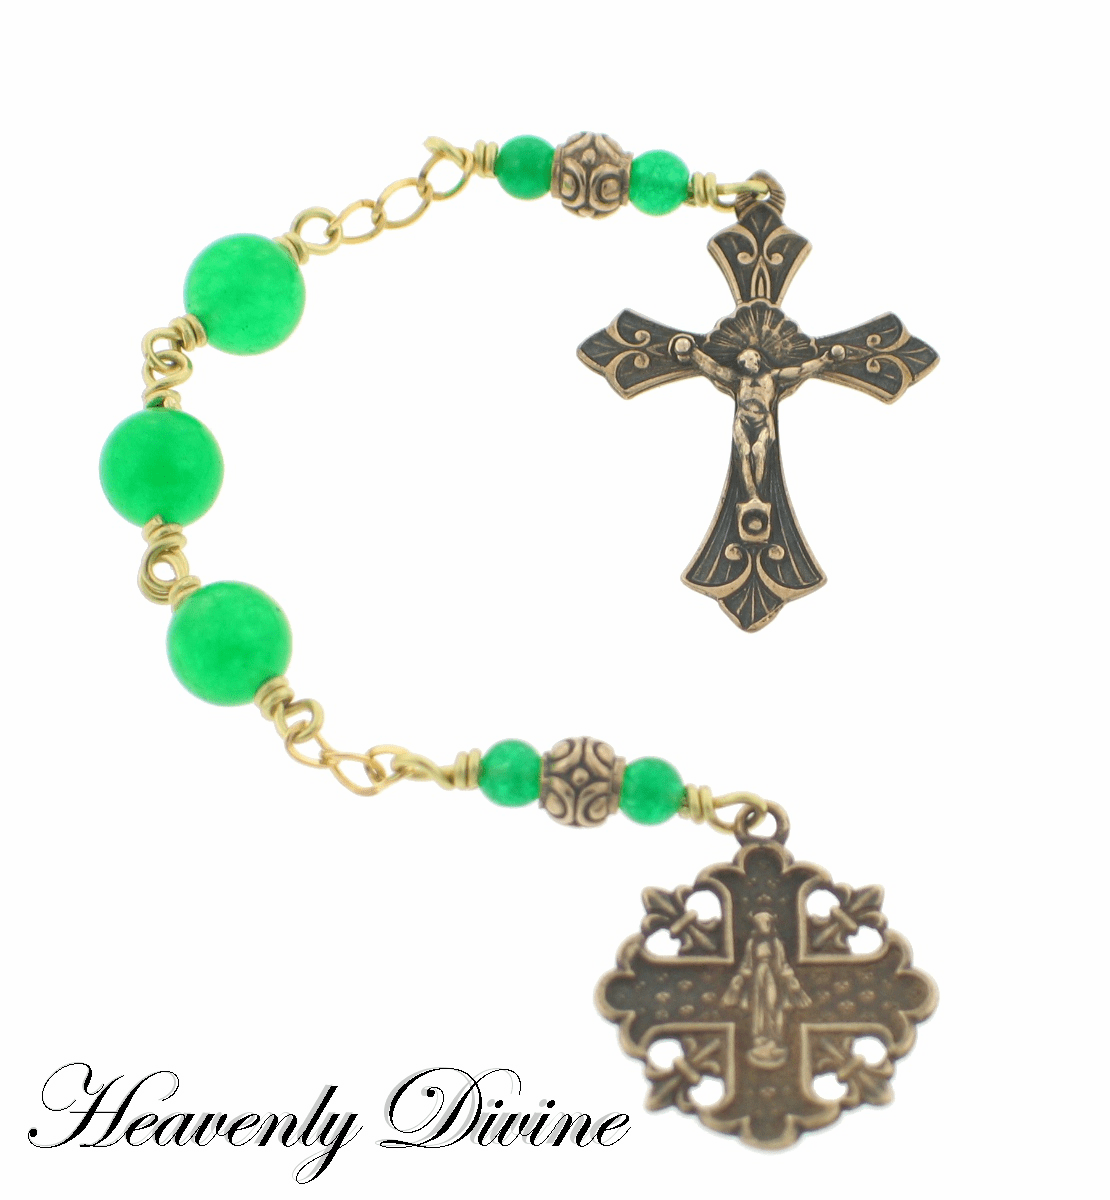 Handmade Green Jade Three Hail Mary Chaplet by Heavenly Divine